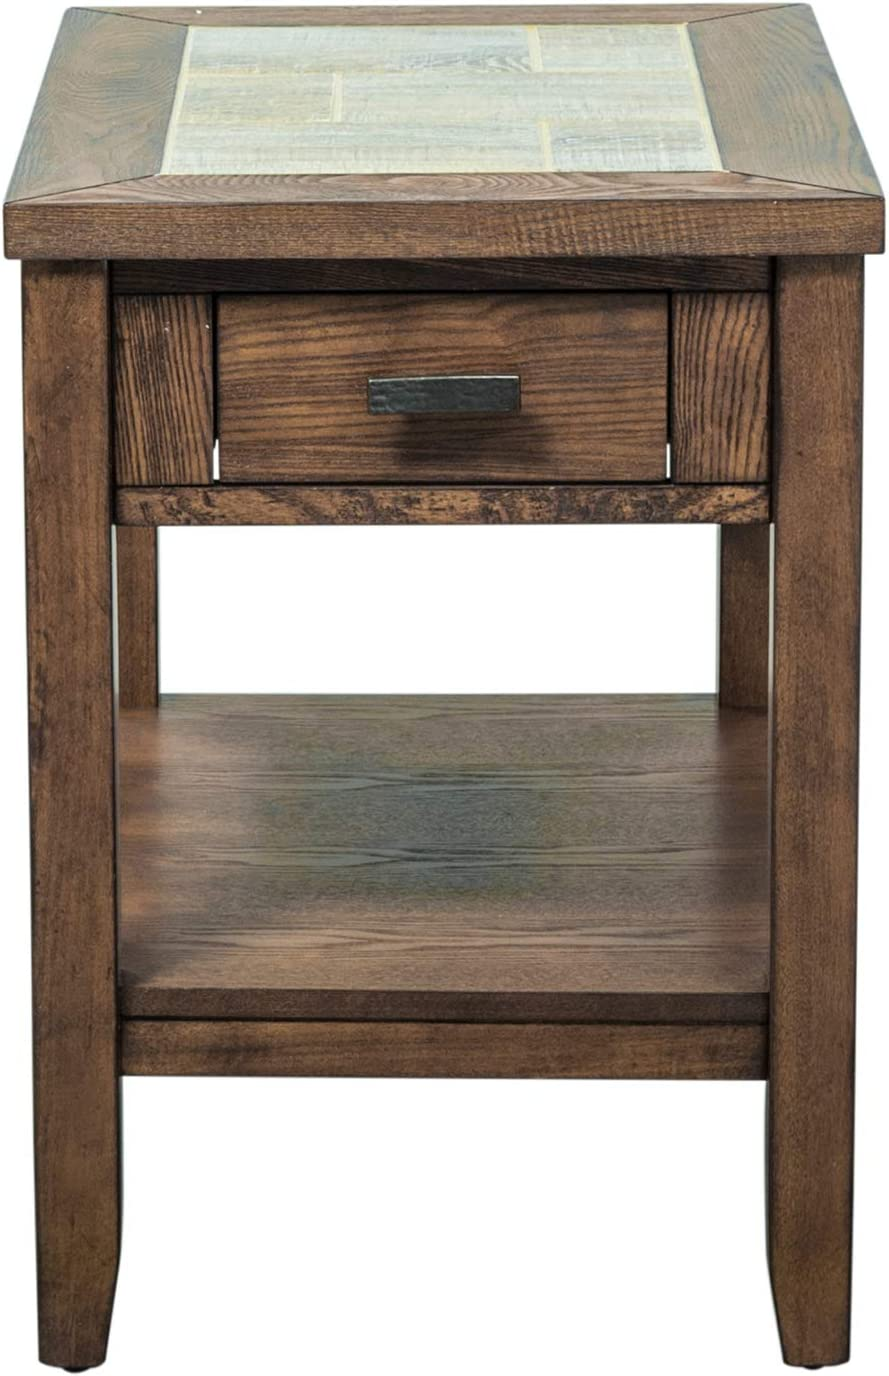 Liberty Furniture Industries Mesa Valley Chair Side Table, W24 x D17 x H24, Medium Brown